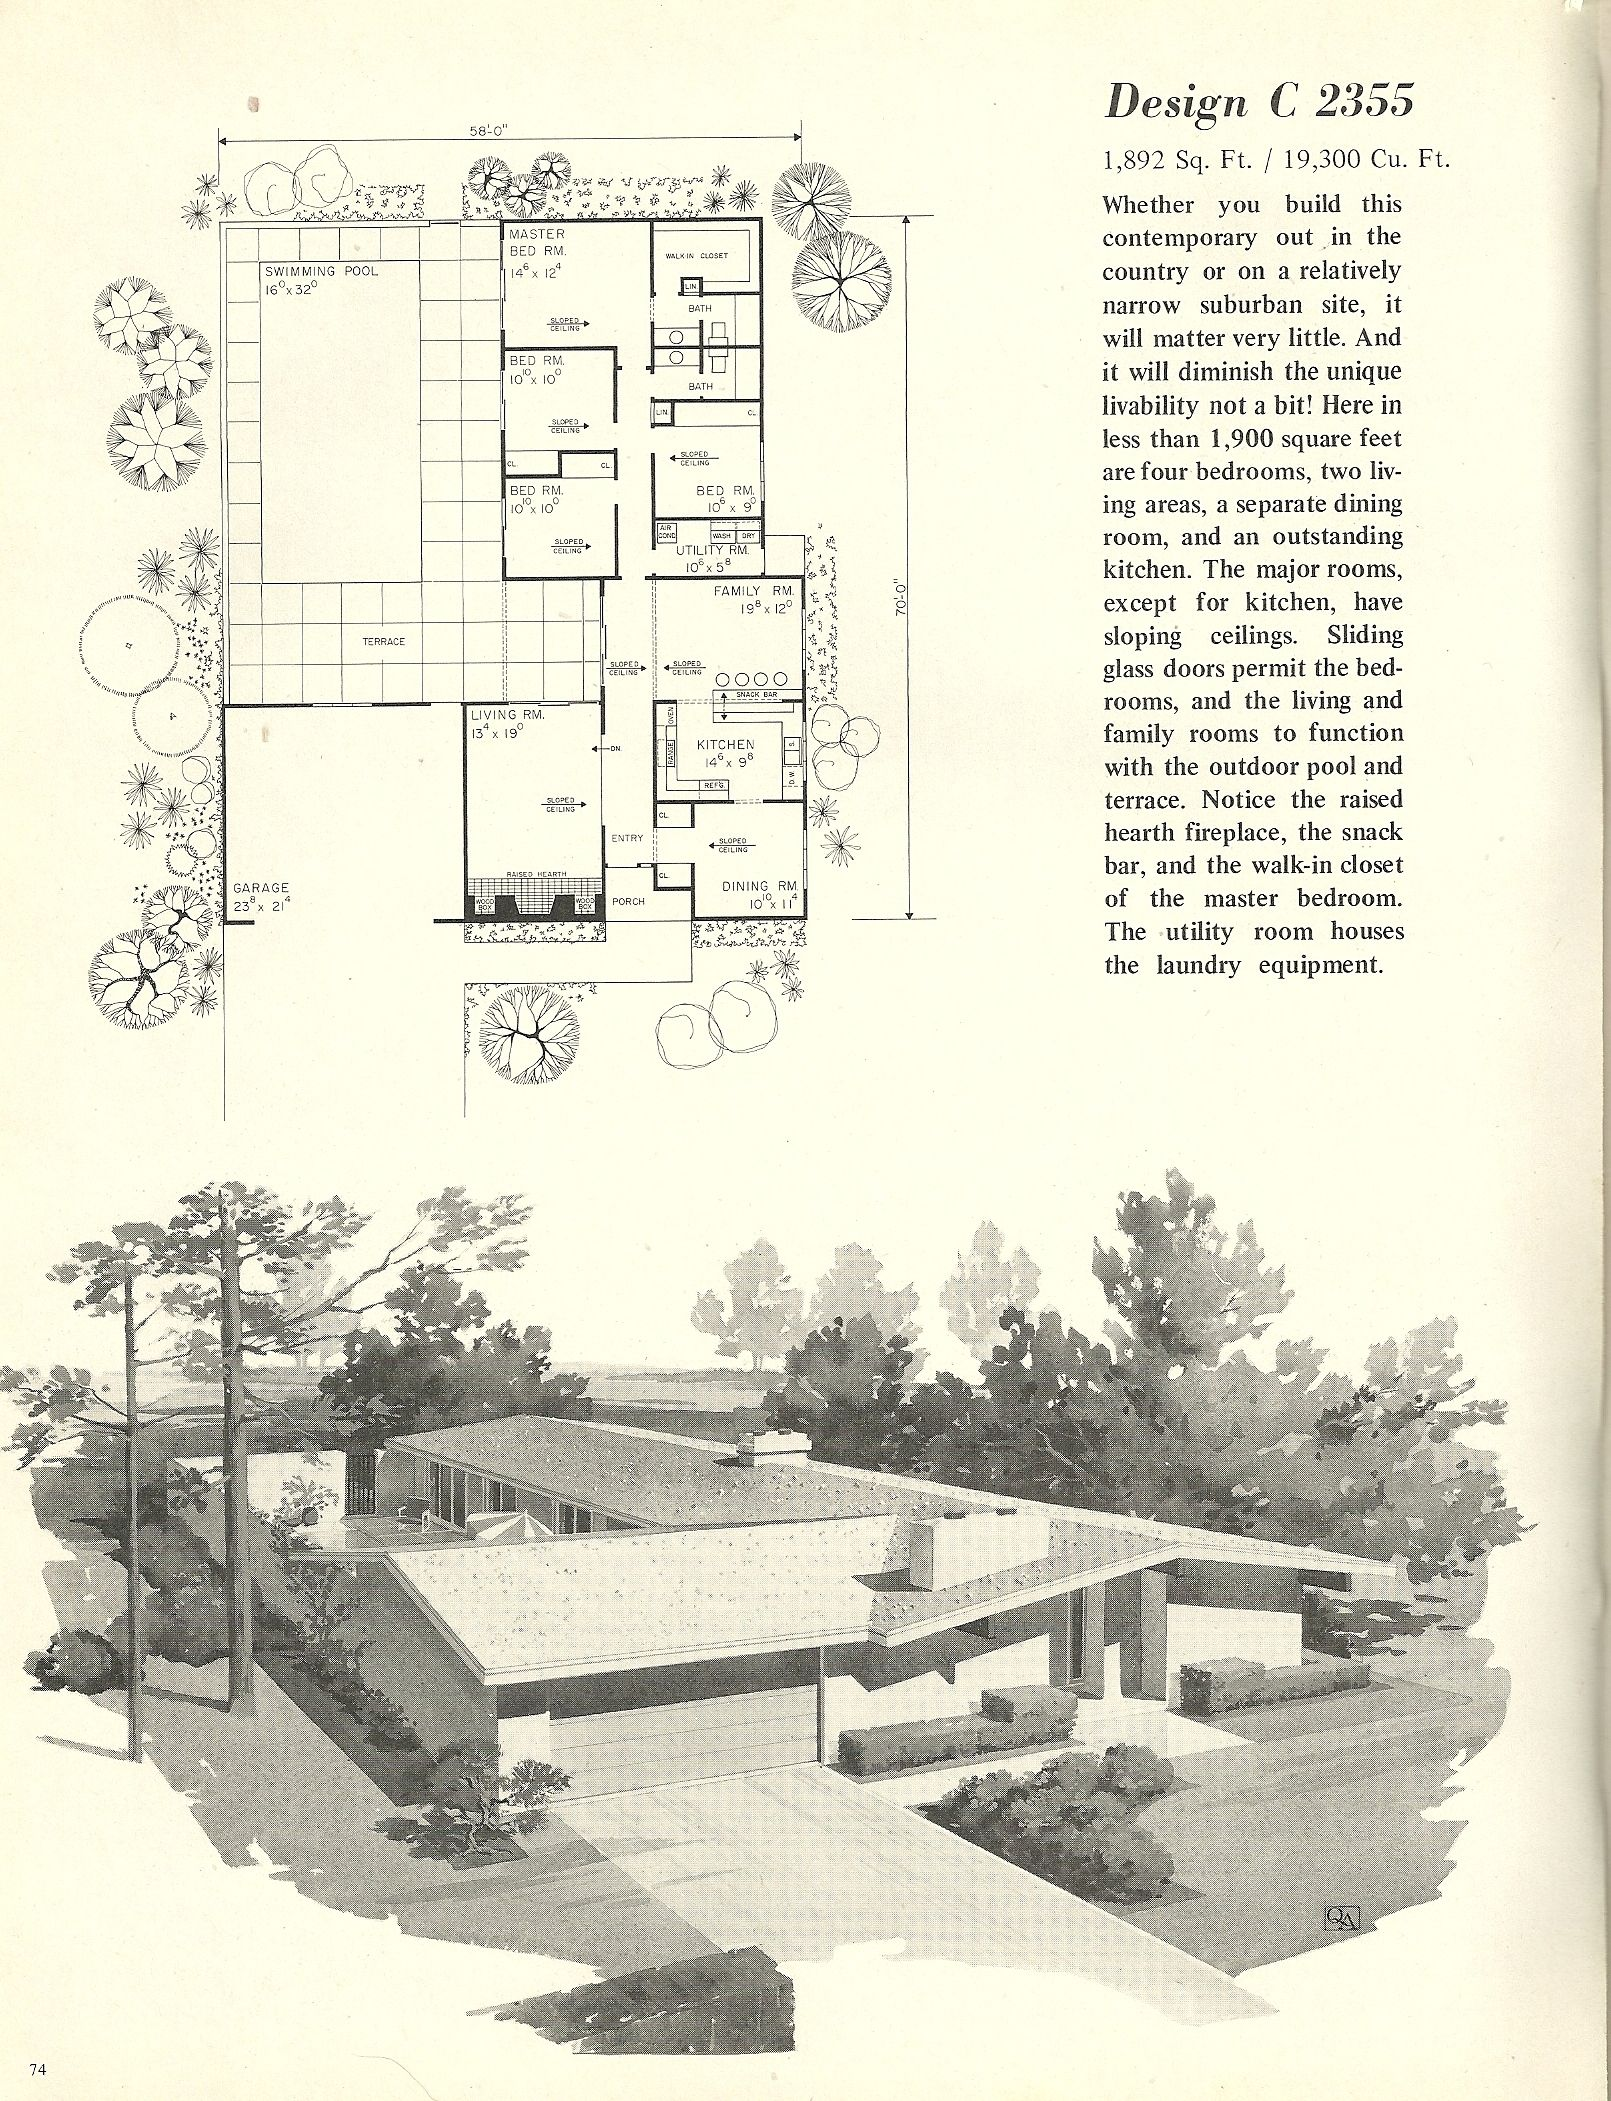 mid century modern house plans house plans 1960s homes vintage house plans retro pinterest vintage house plans modern house plans and mid century